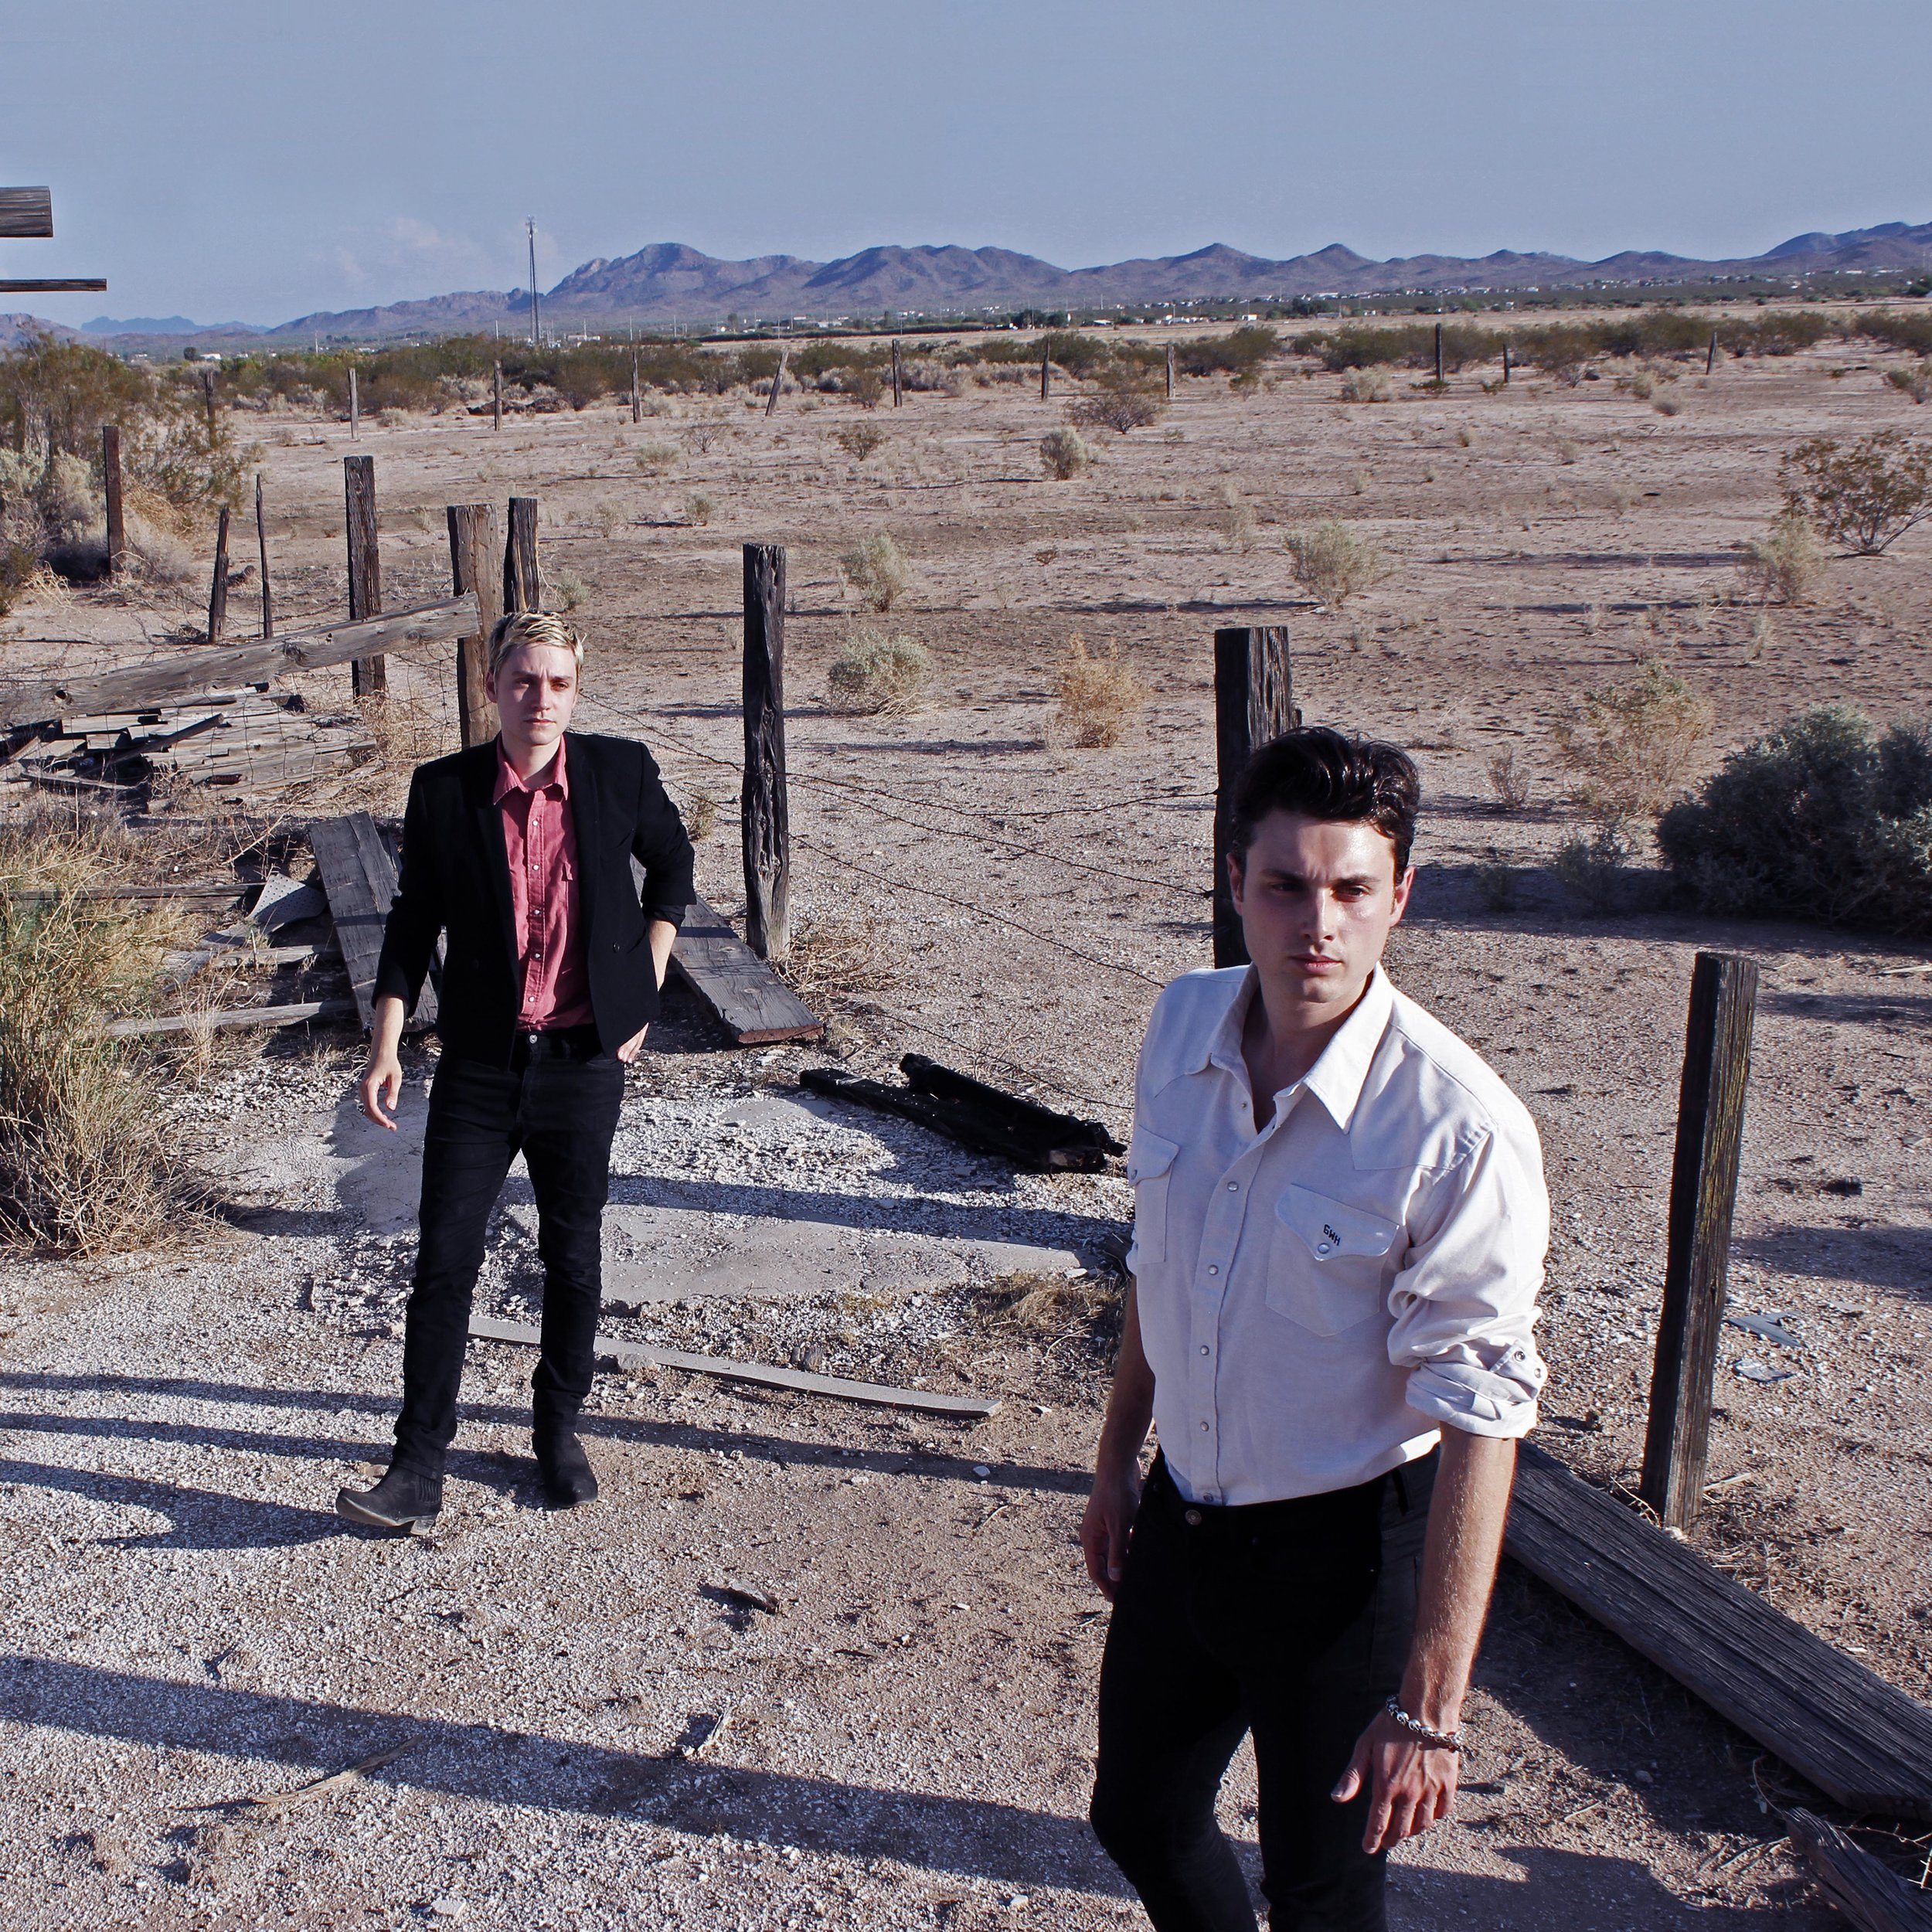 Ruen Brothers - Image 1 ('Unknown' cover photo).jpg